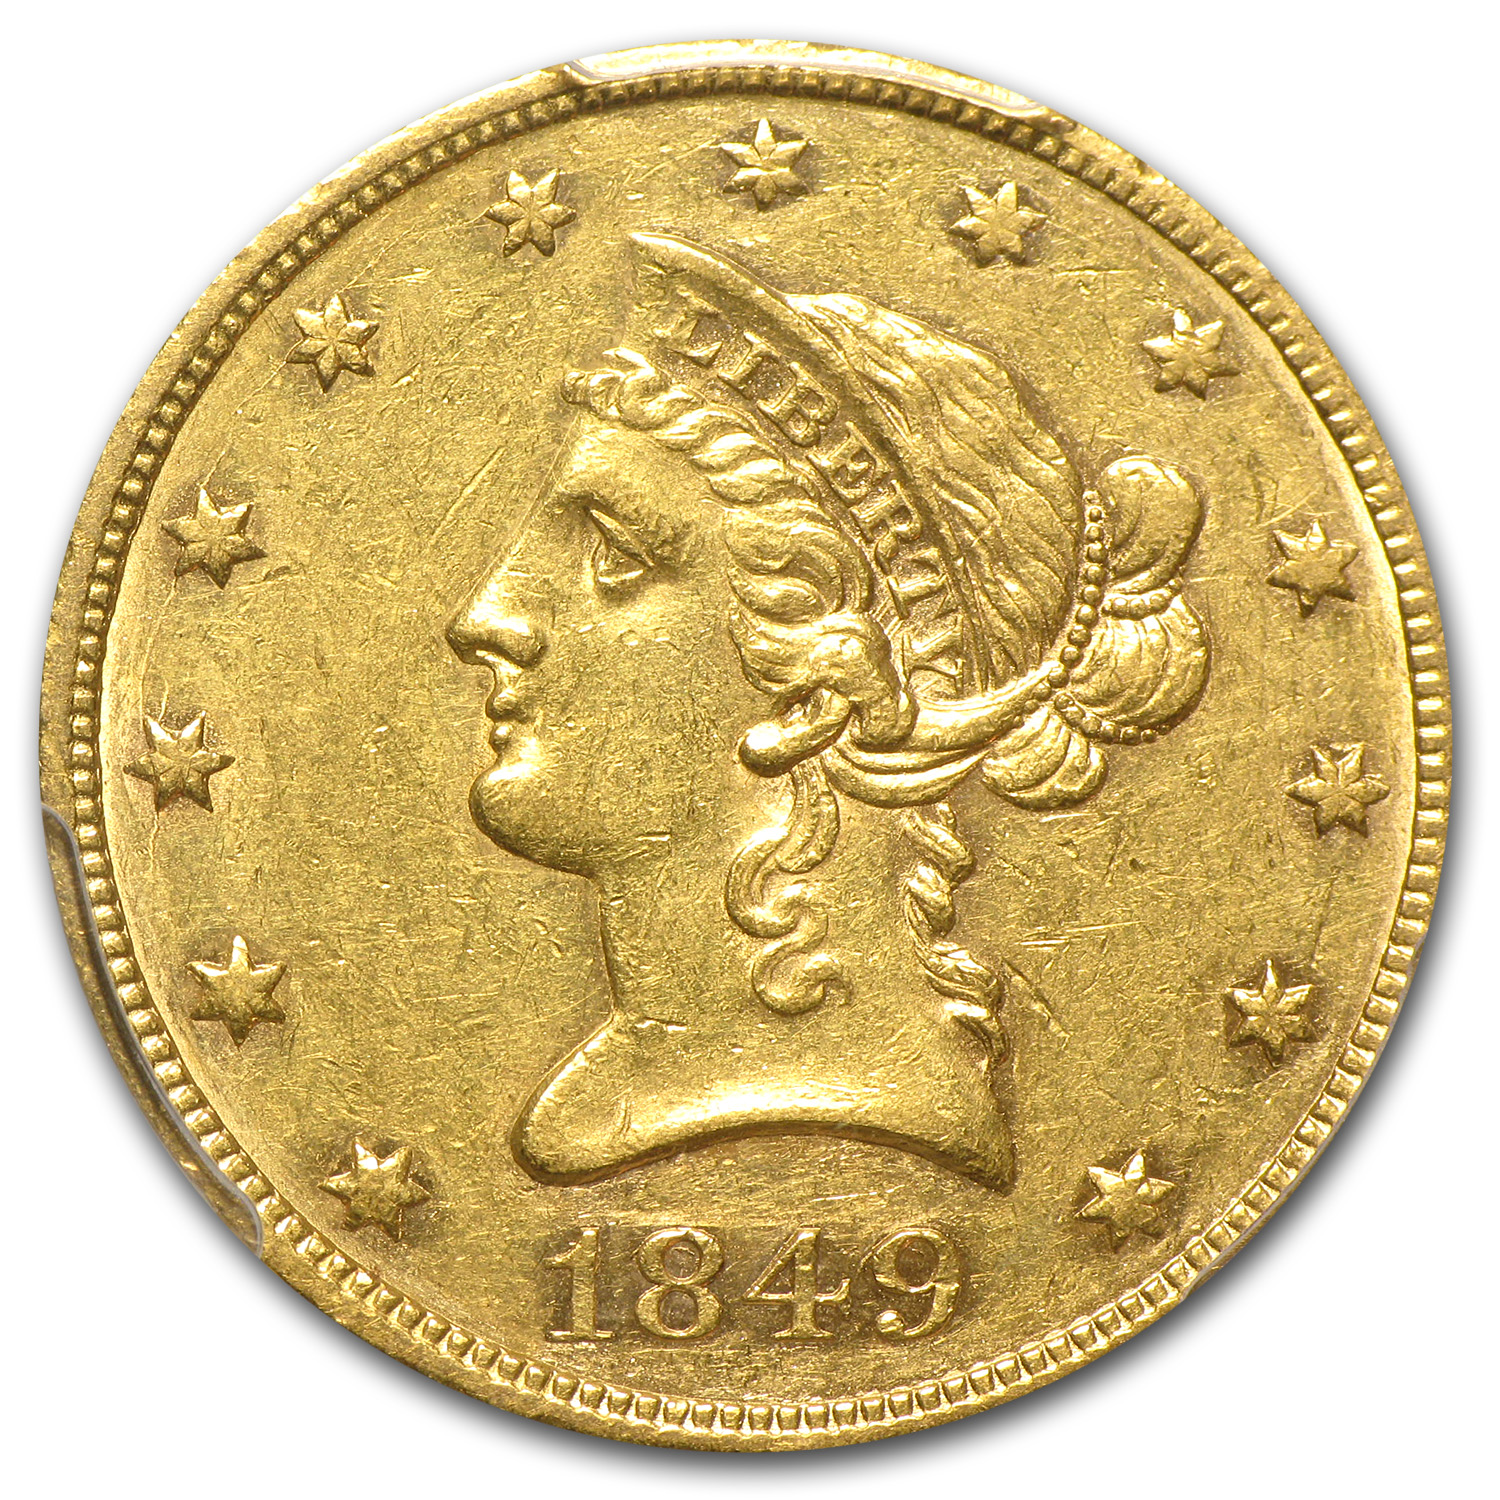 1849 $10 Liberty Gold Eagle - AU-53 PCGS